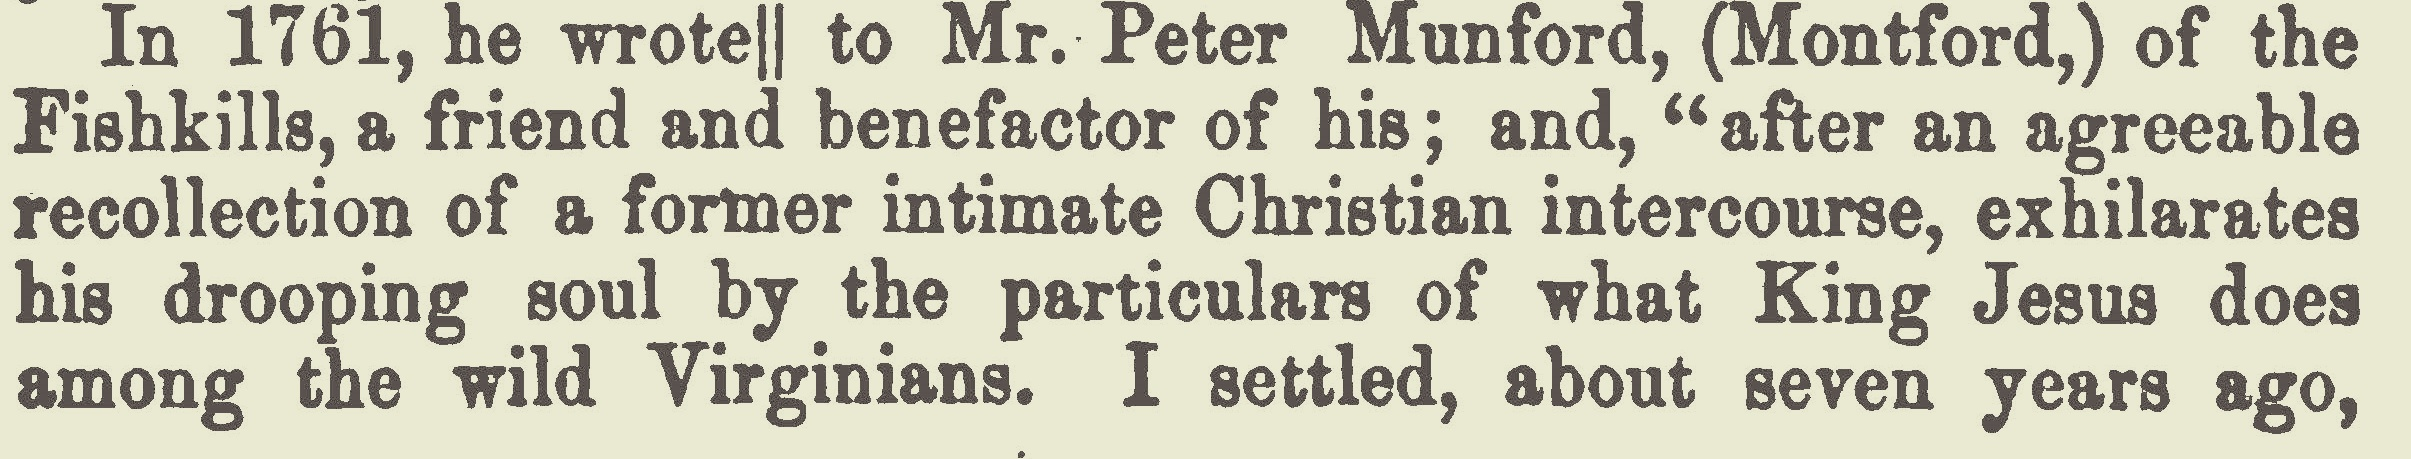 Wright, John, 1761 Letter to Peter Munford Title Page.jpg